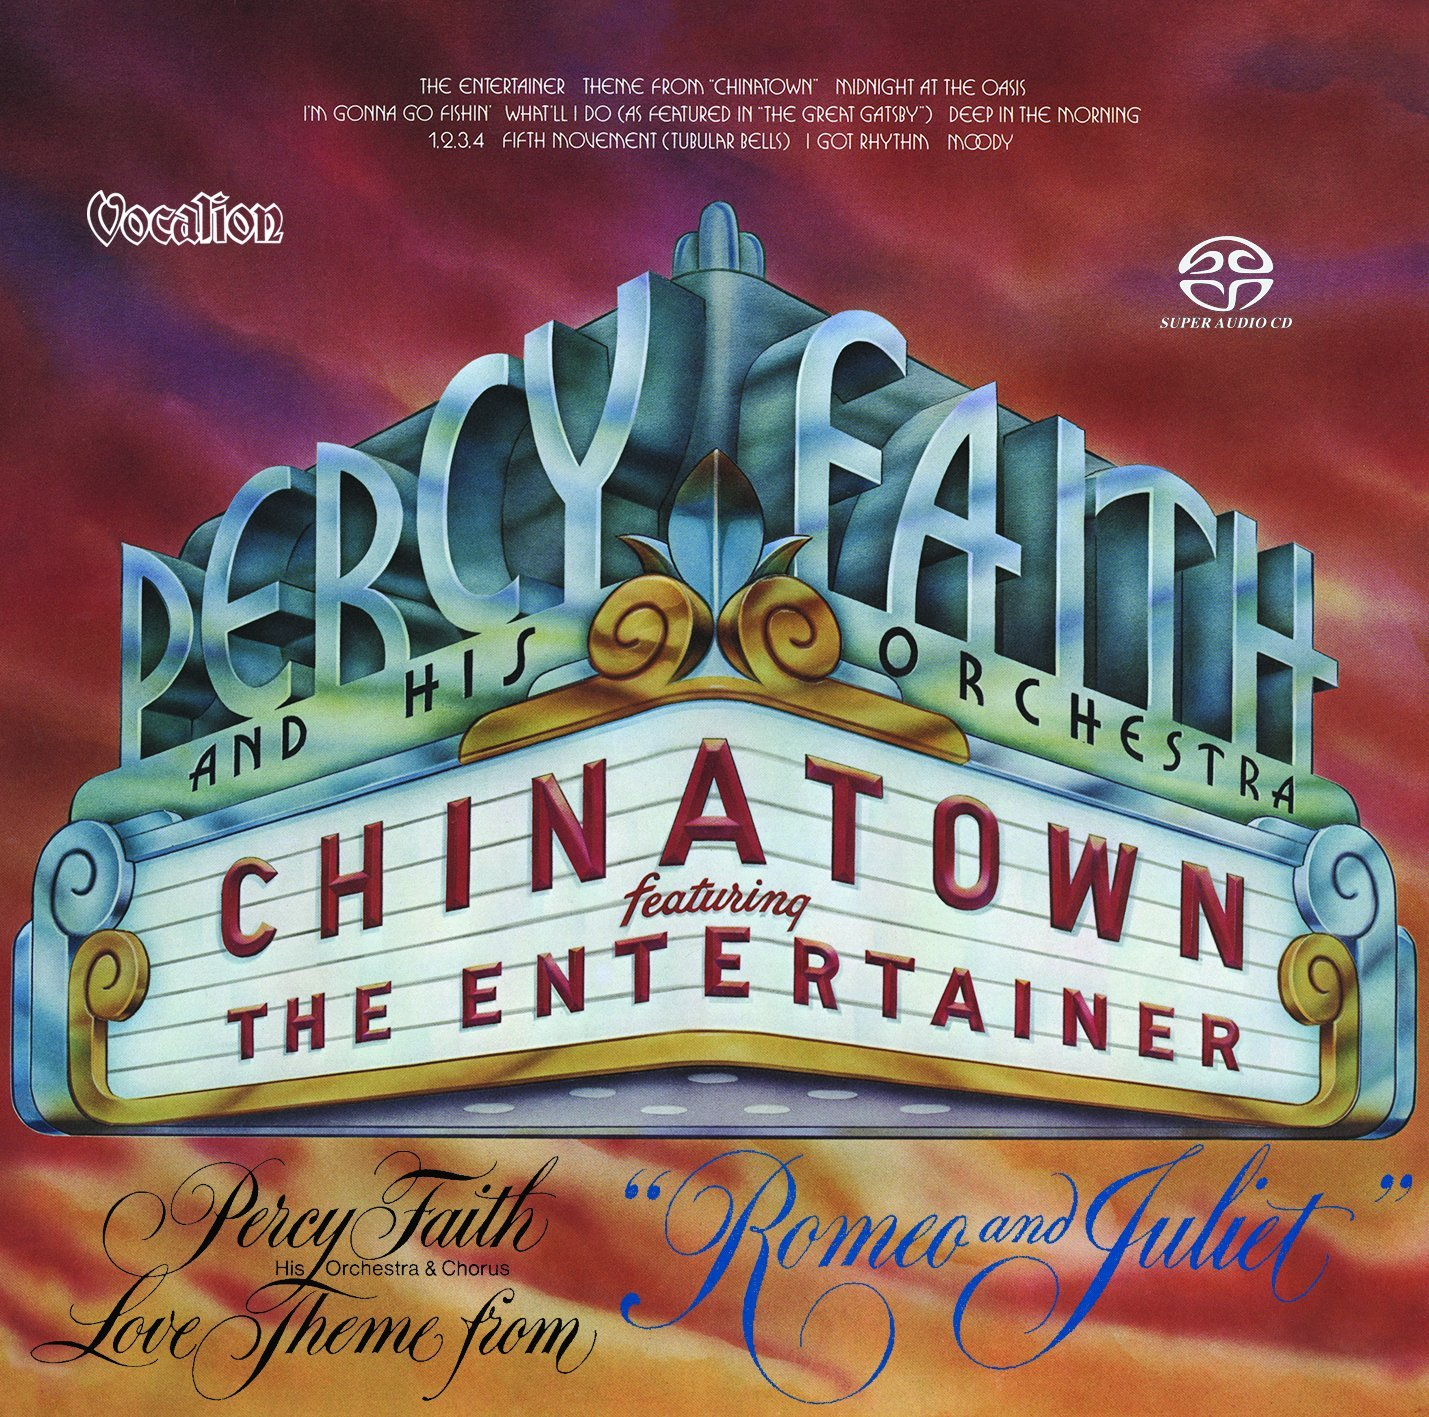 Percy Faith SACD: Chinatown & Love Theme from Romeo and Juliet